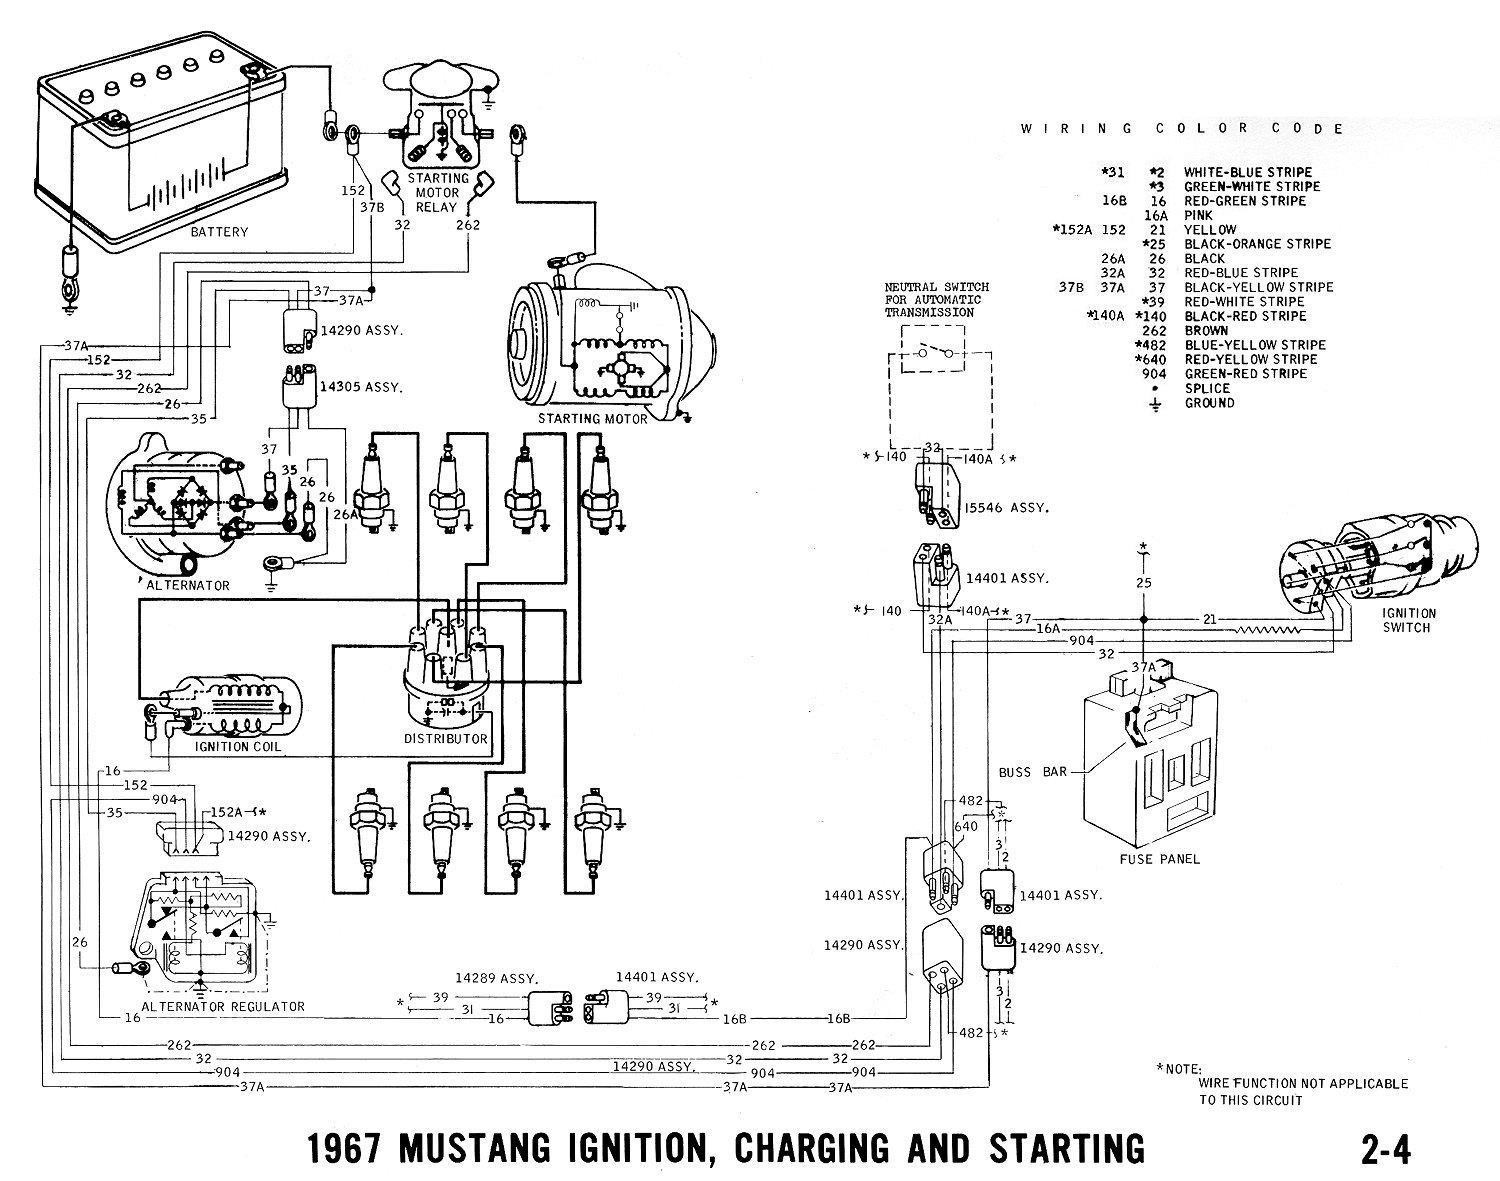 hight resolution of 1967 ford ltd wiring diagram wiring diagram new 1967 ford ltd wiring diagram